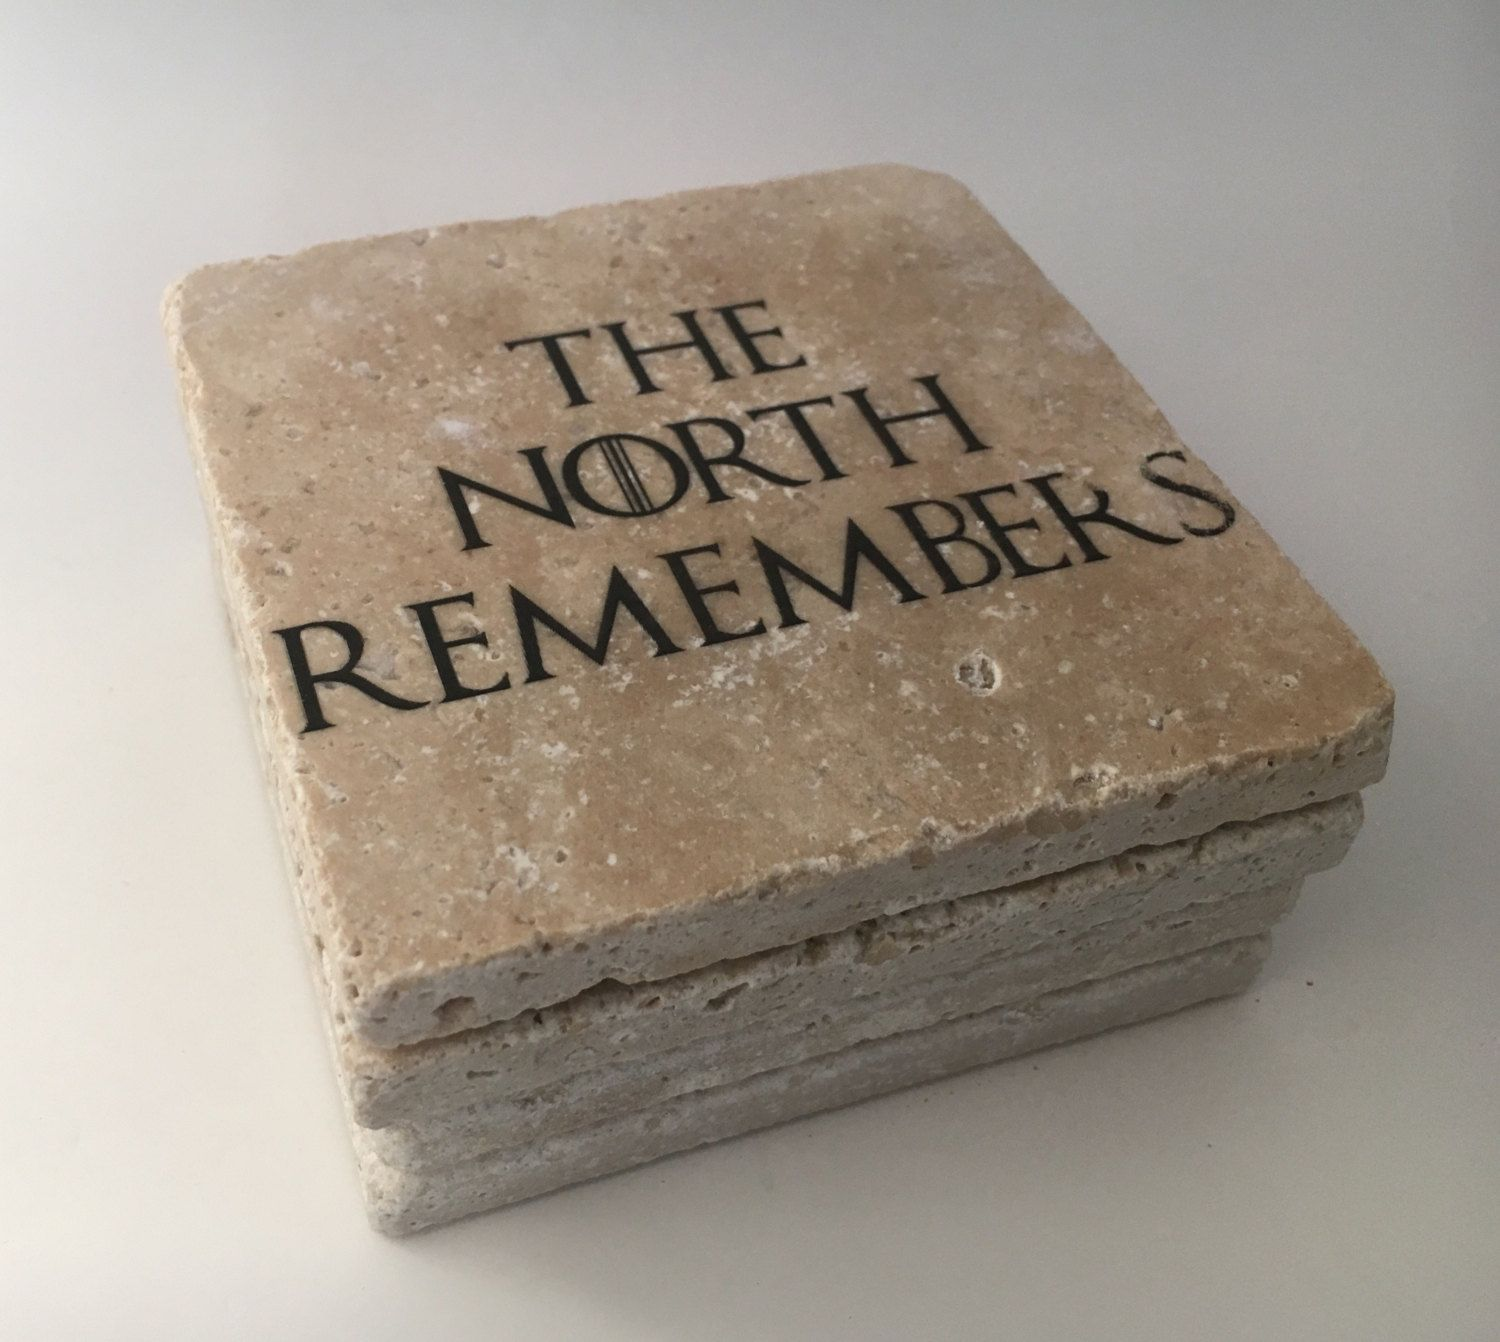 The North Remembers Game Of Thrones Natural Travertine Tile Tumbled - Cork coaster bottoms